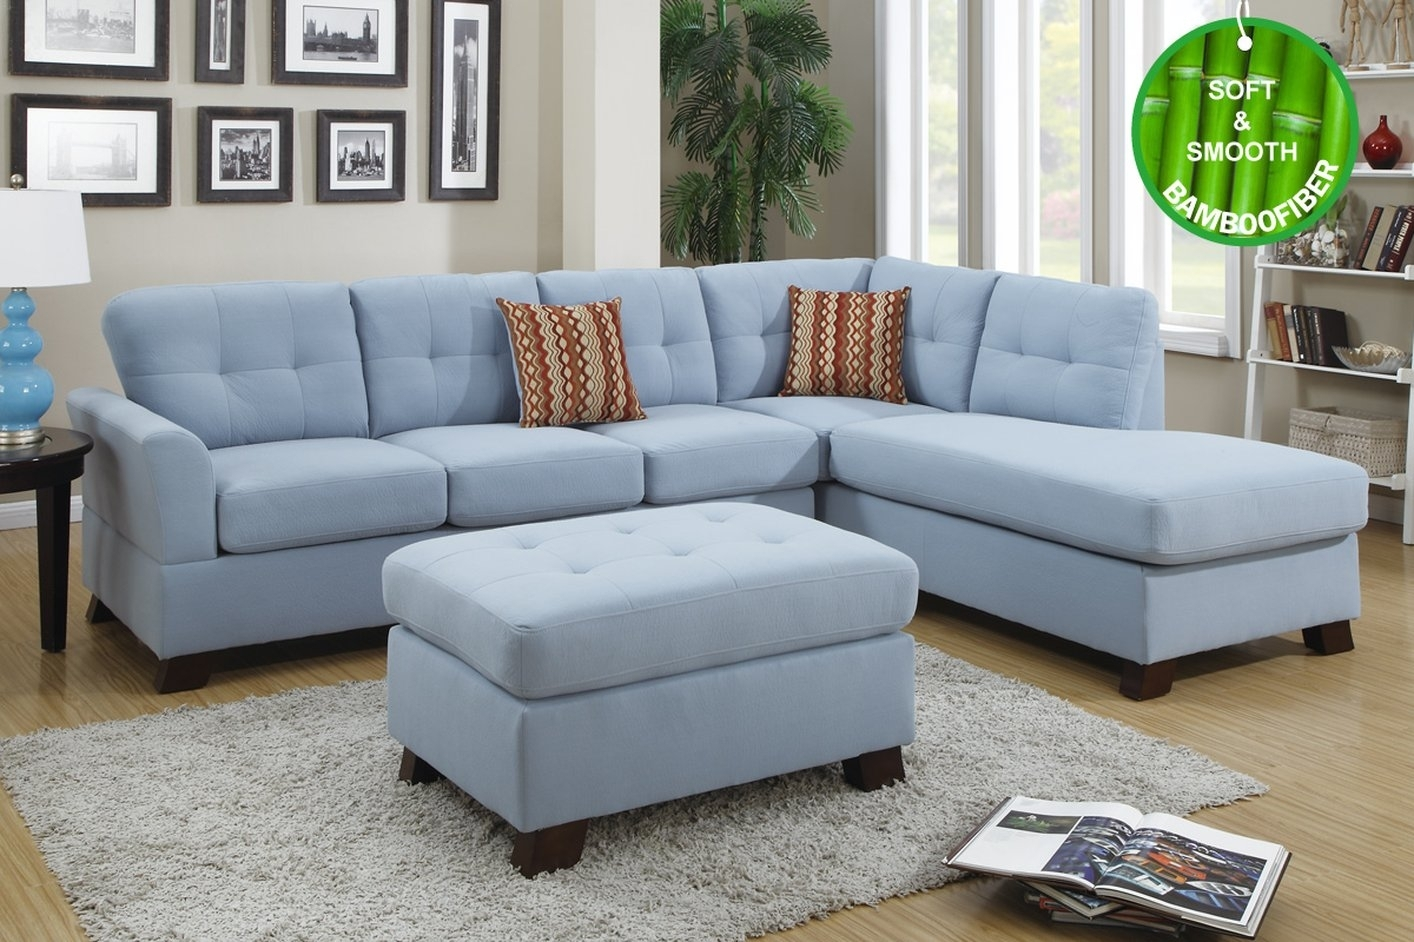 Good Blue Sectional Sofa 45 Modern Sofa Inspiration With Blue Regarding Blue Sectional Sofas (View 7 of 10)